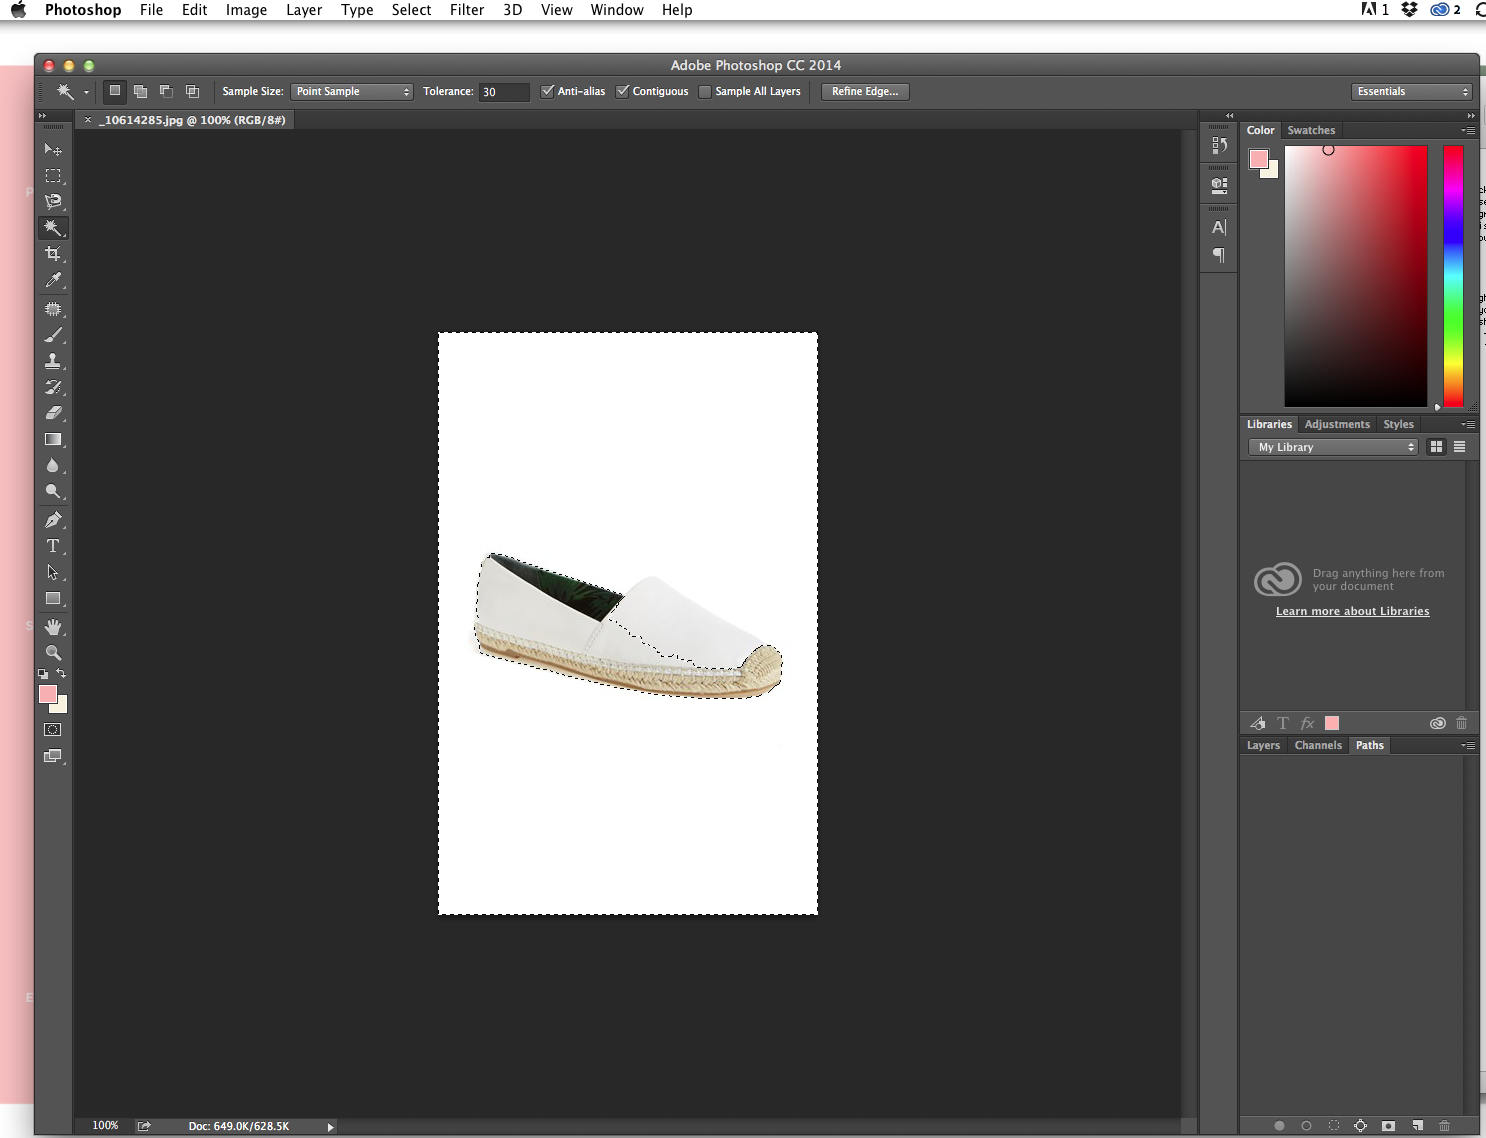 How to make a collage in Photoshop